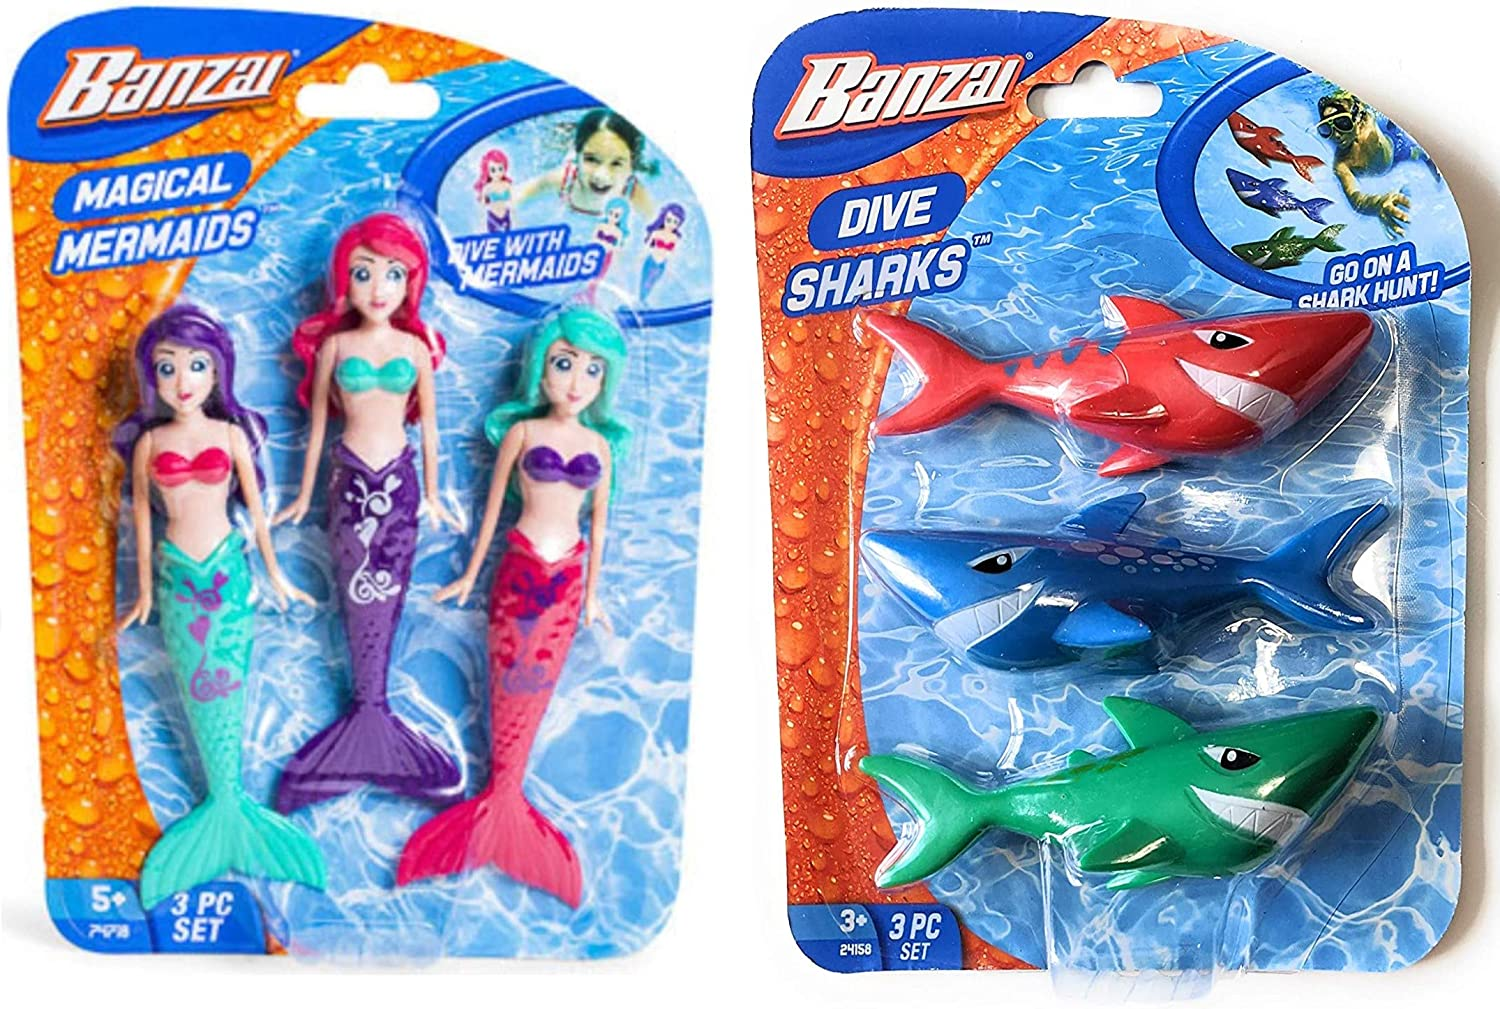 Banzai 3 Piece Magical Mermaid Dolls and 3 Piece Dive Sharks Pool Toys Bundle Set of Pool Toys: Toys & Games